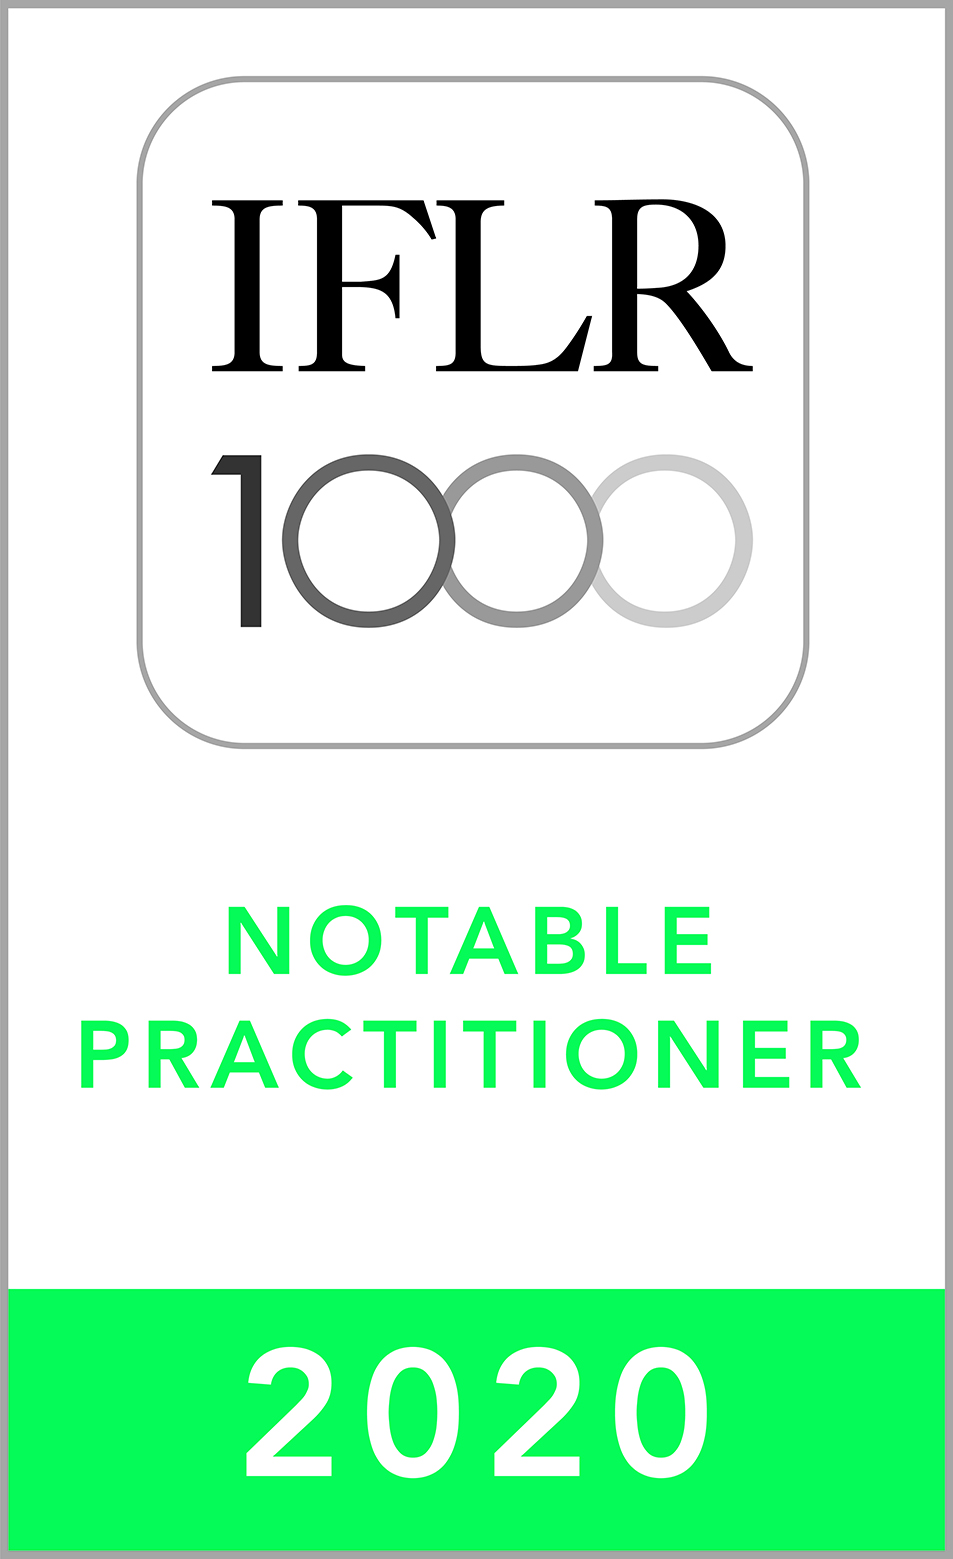 Recognised as Notable Practitioner in Financial & Corporate Law by IFLR1000, LC Lawyers LLP, Bonnie Yung, 2020